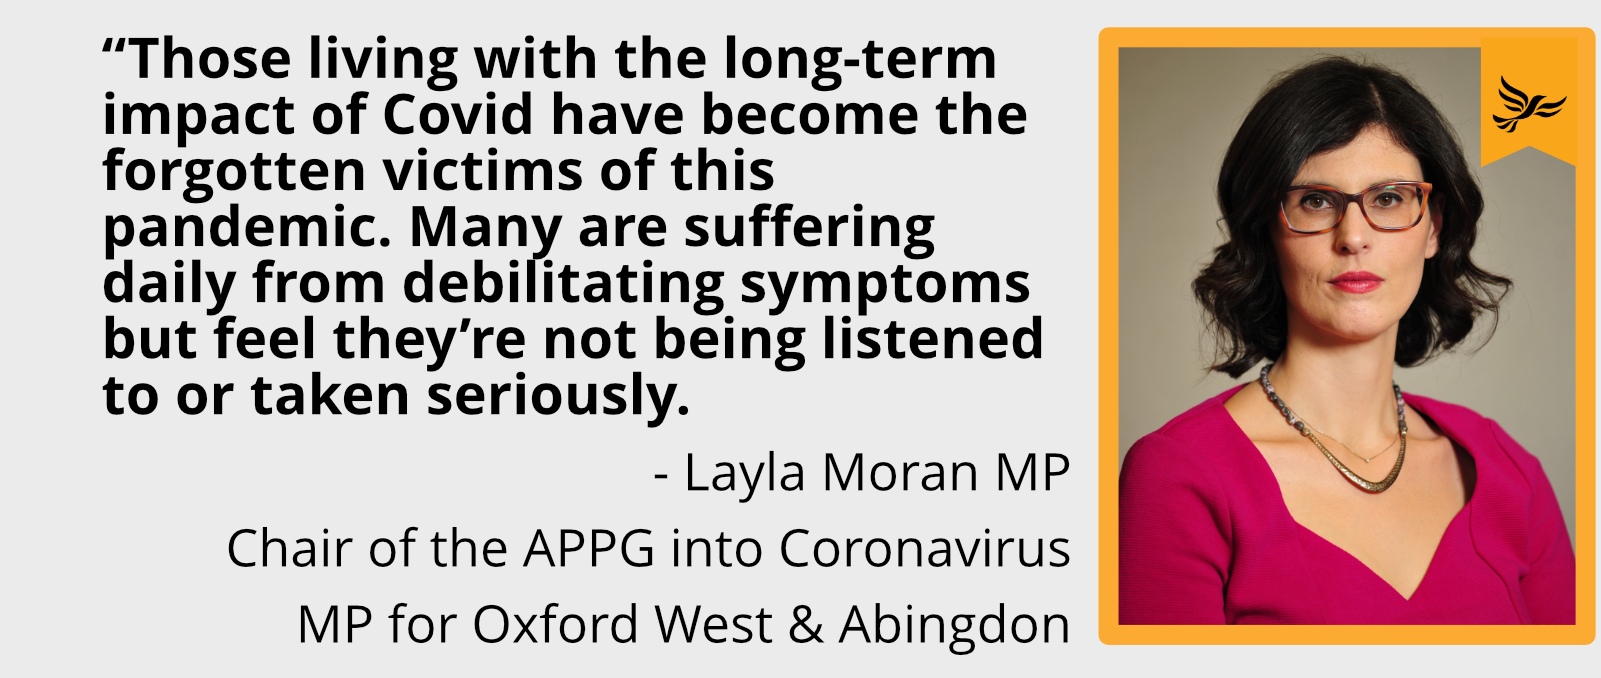 """Those living with the long-term impact of Covid have become the forgotten victims of this pandemic. Many are suffering daily from debilitating symptoms but feel they're not being listened to or taken seriously."